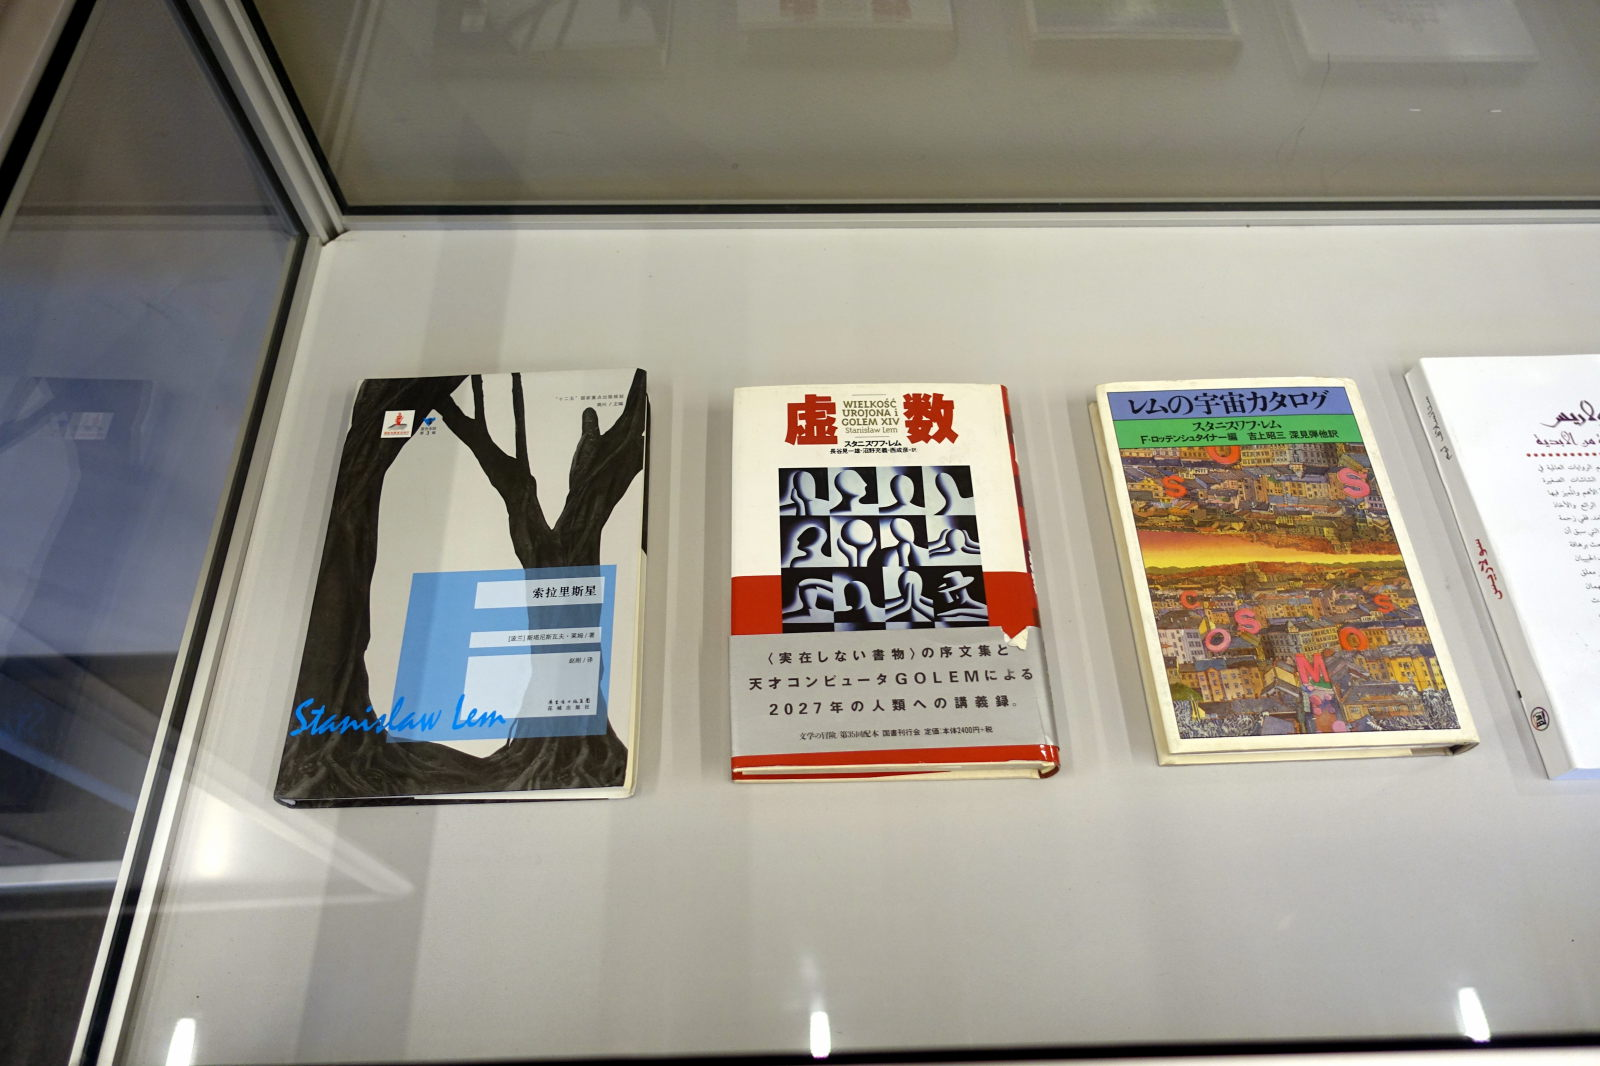 Three books visible in a display case. First one is in Chinese the next two are in Japanese.